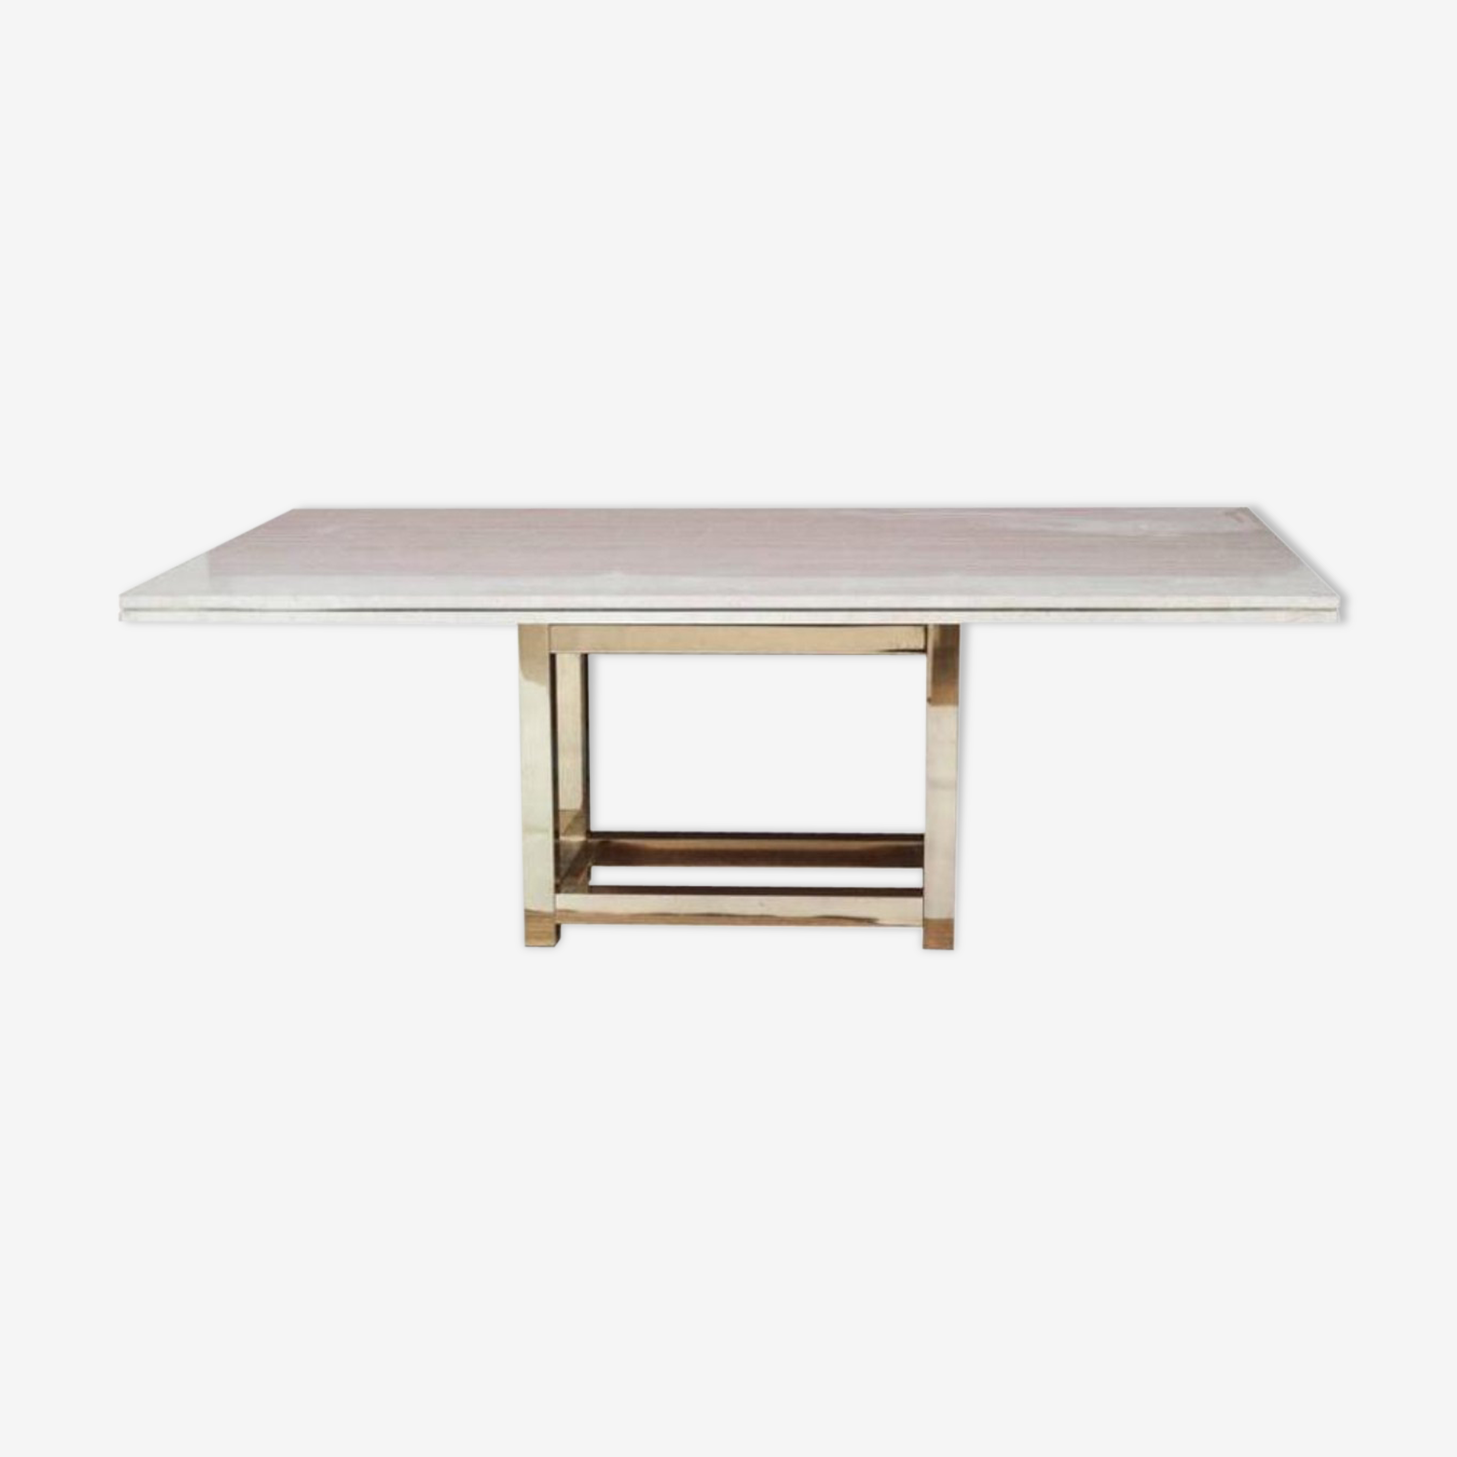 Table dining room vintage brass base with travertine top